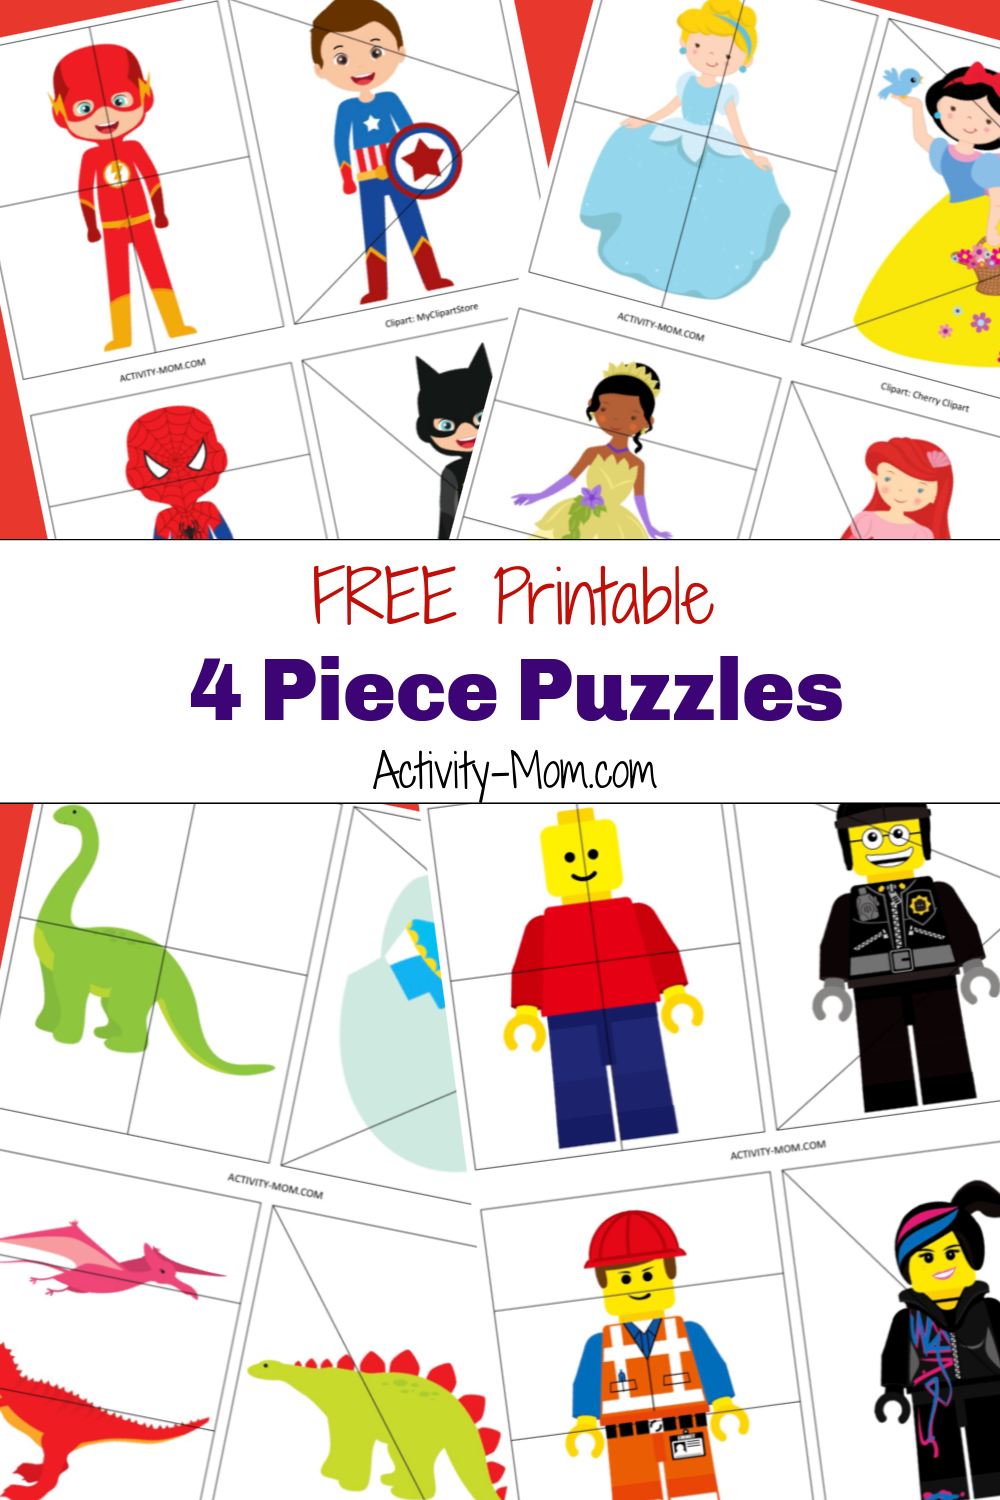 FREE Printable 4 Piece Puzzles for Kids